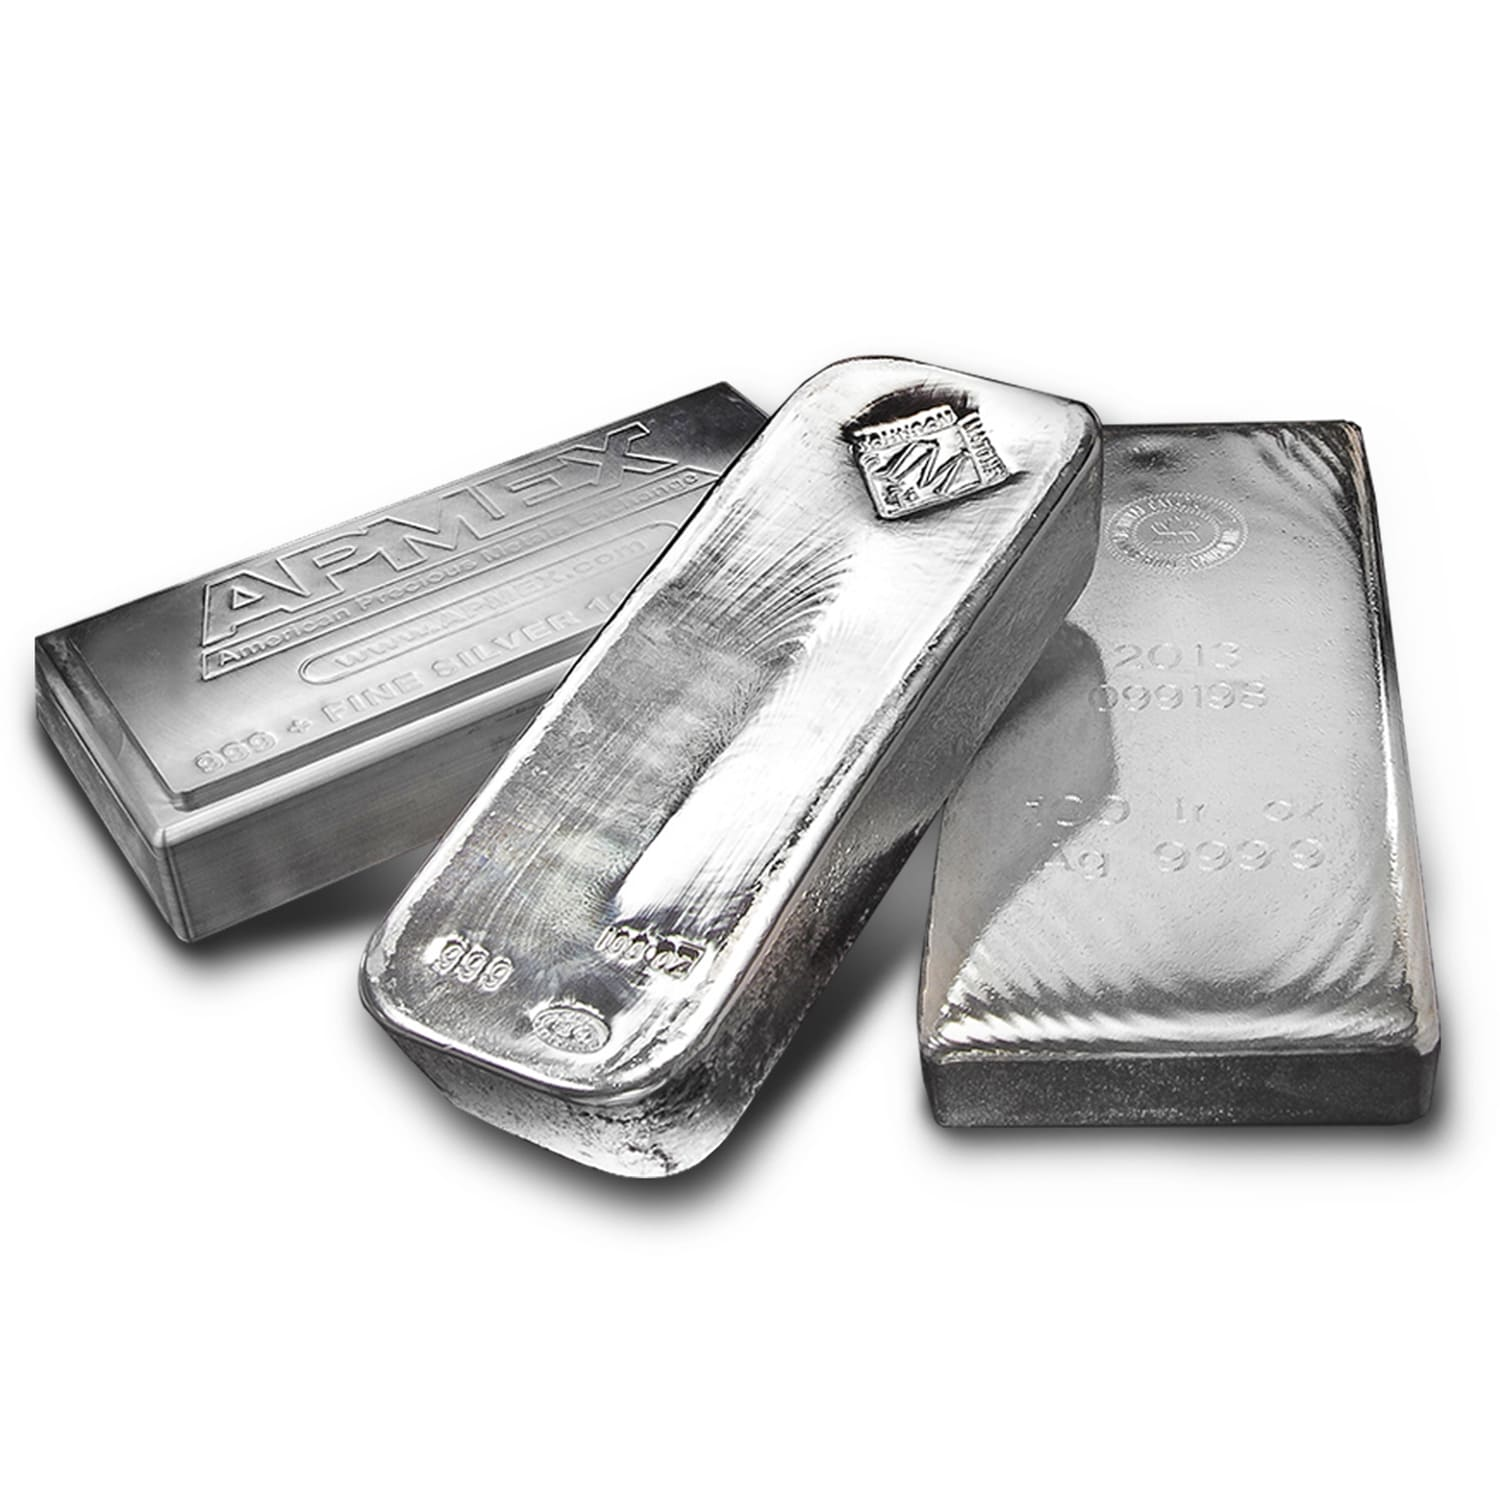 103.80 oz Silver Bar - Secondary Market